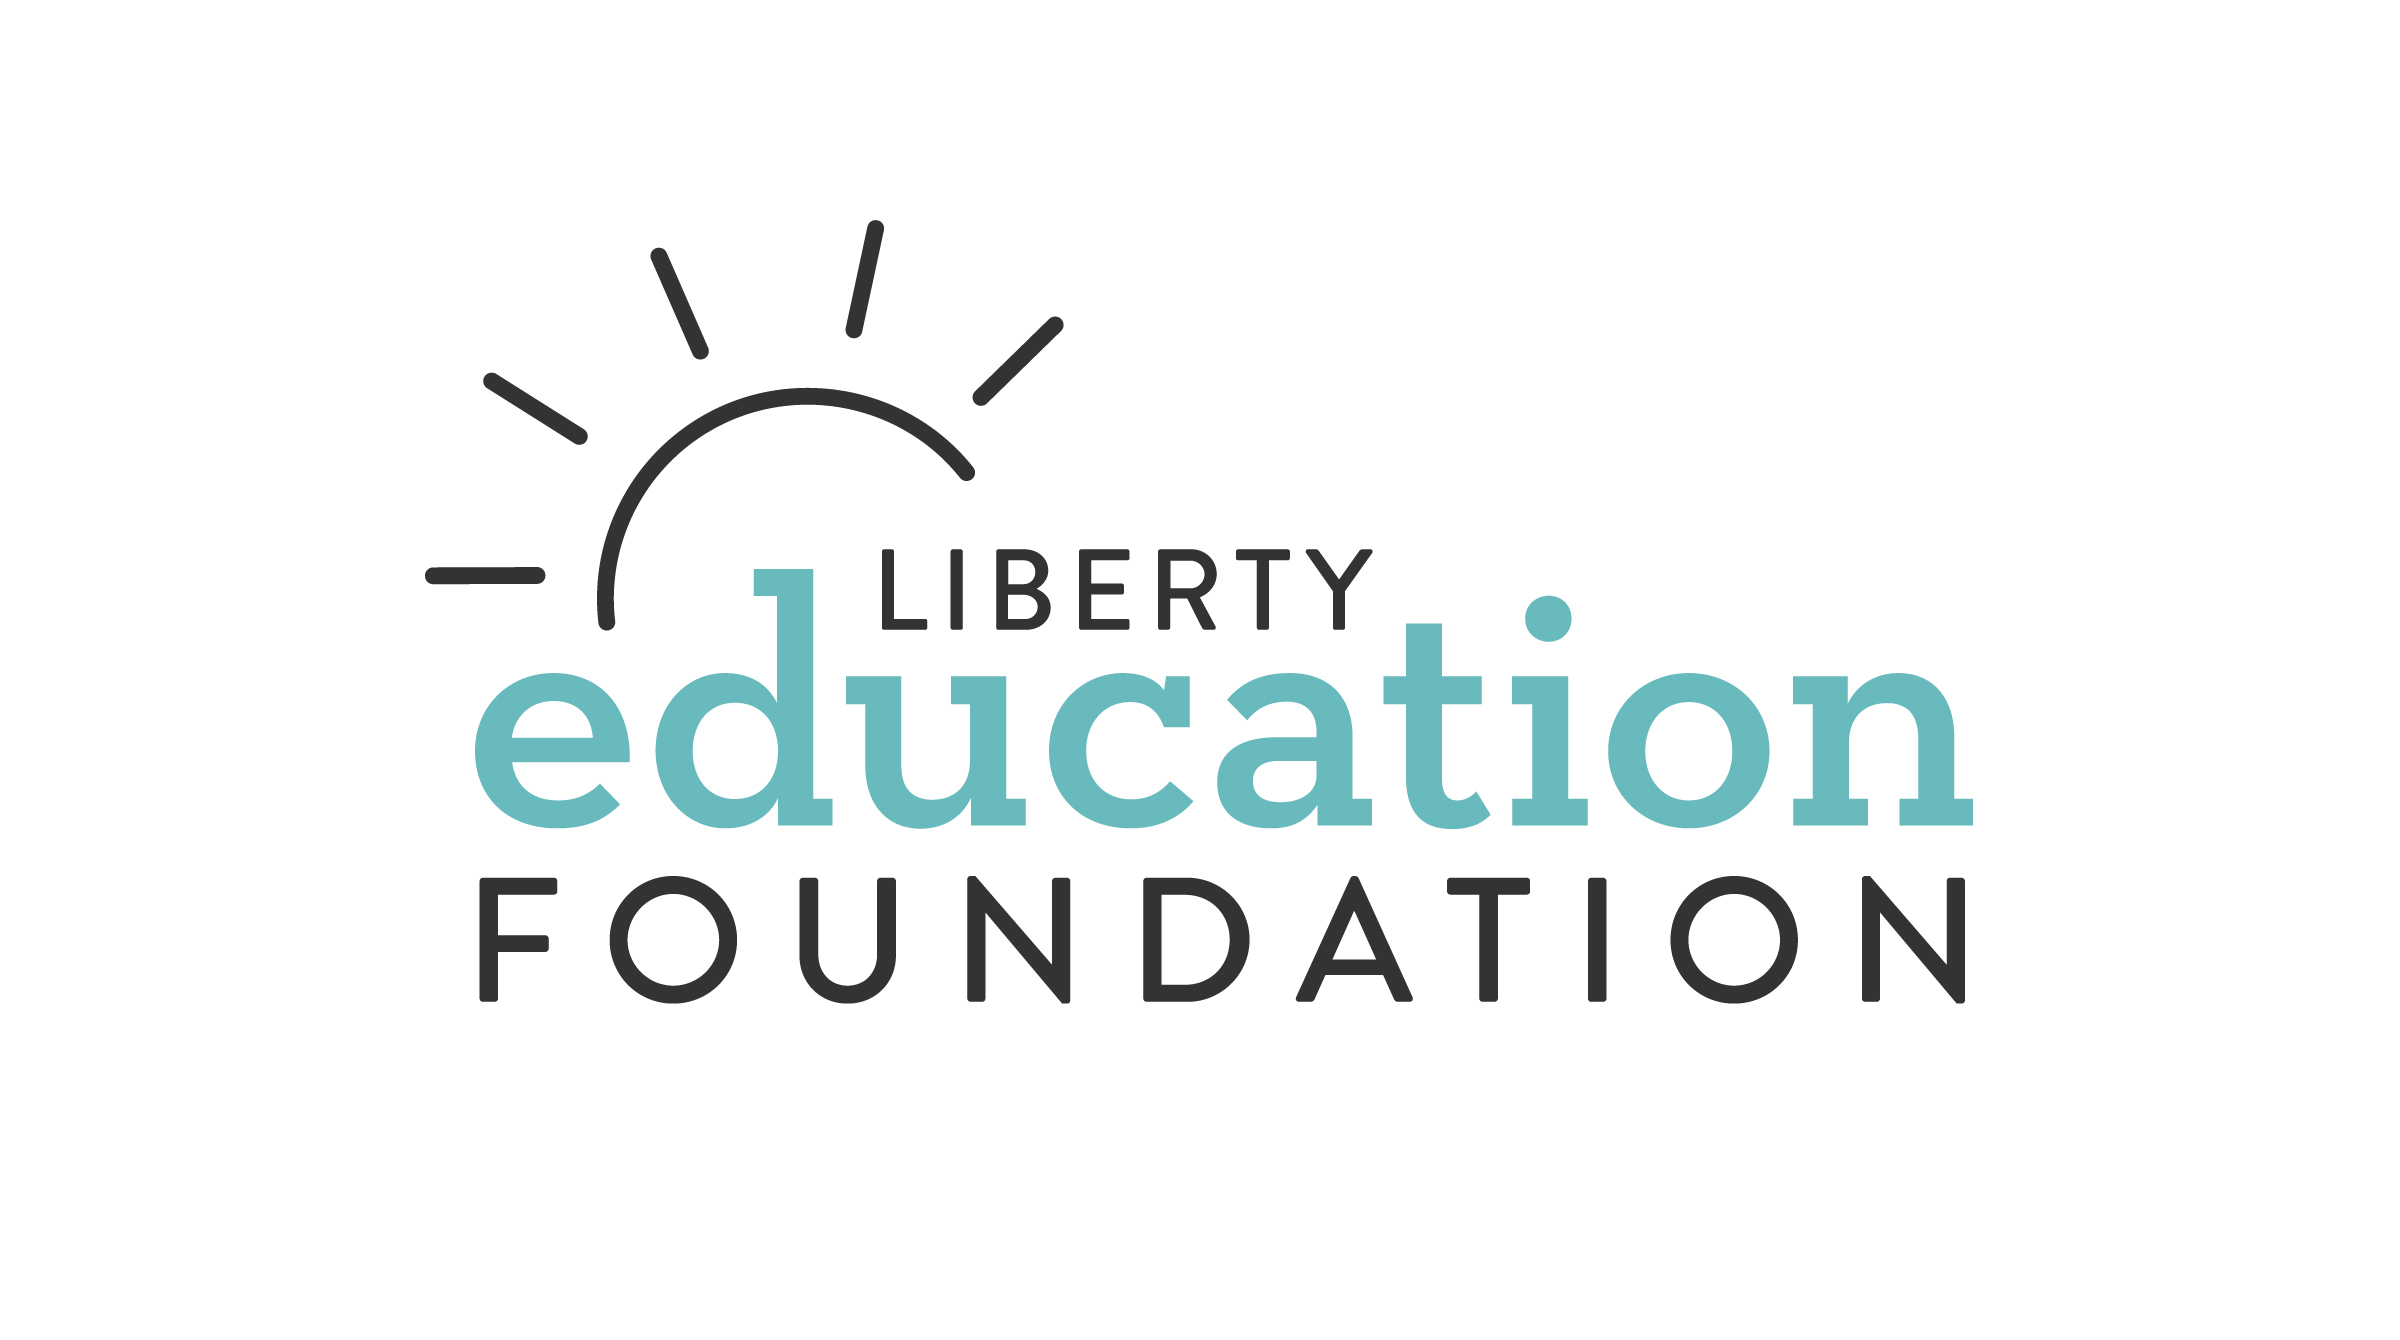 Redesigned logo for the Liberty Education Foundation